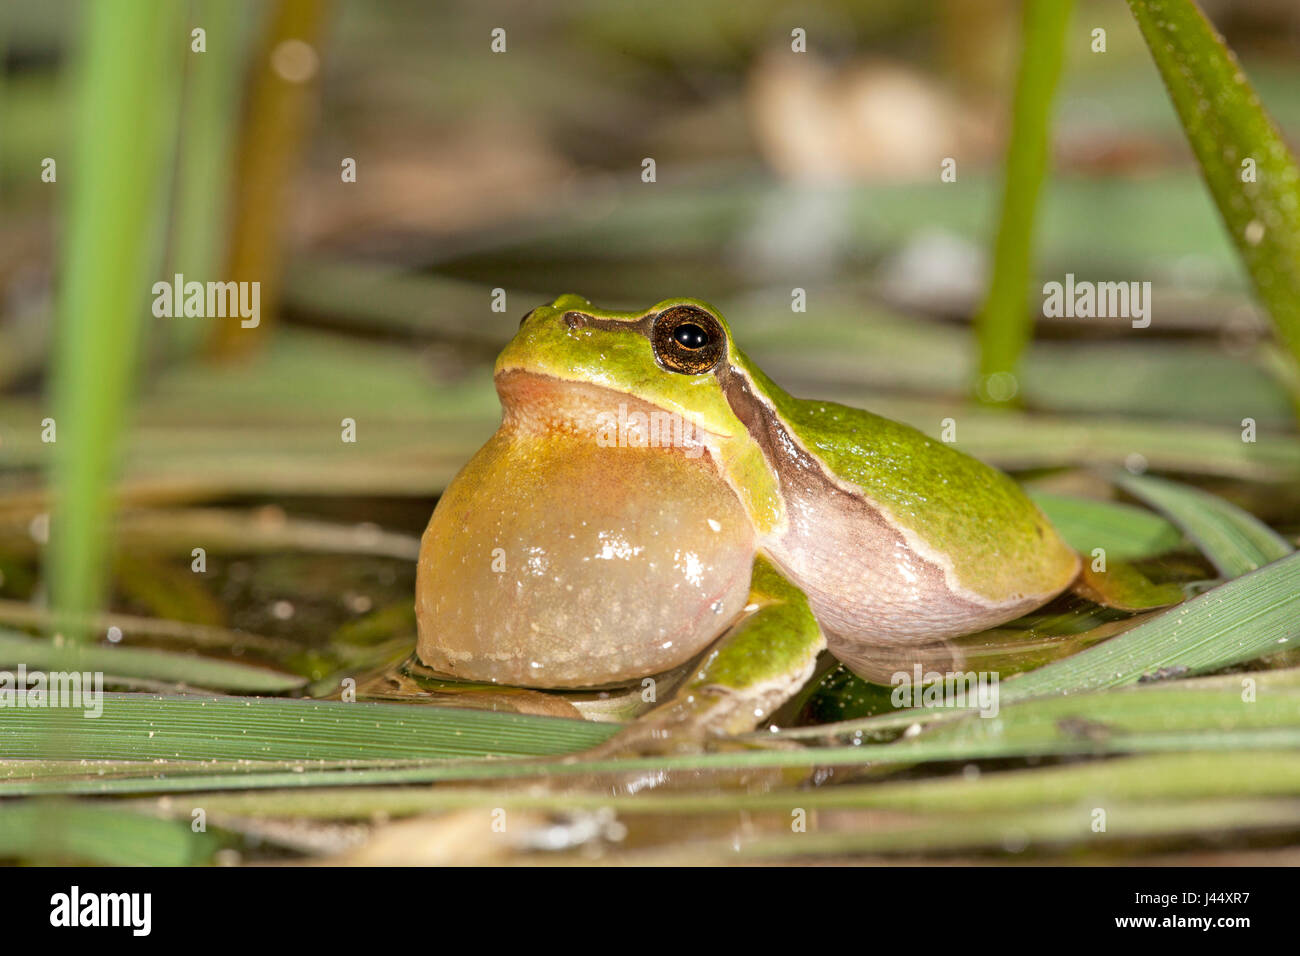 photo of a calling male common tree frog - Stock Image